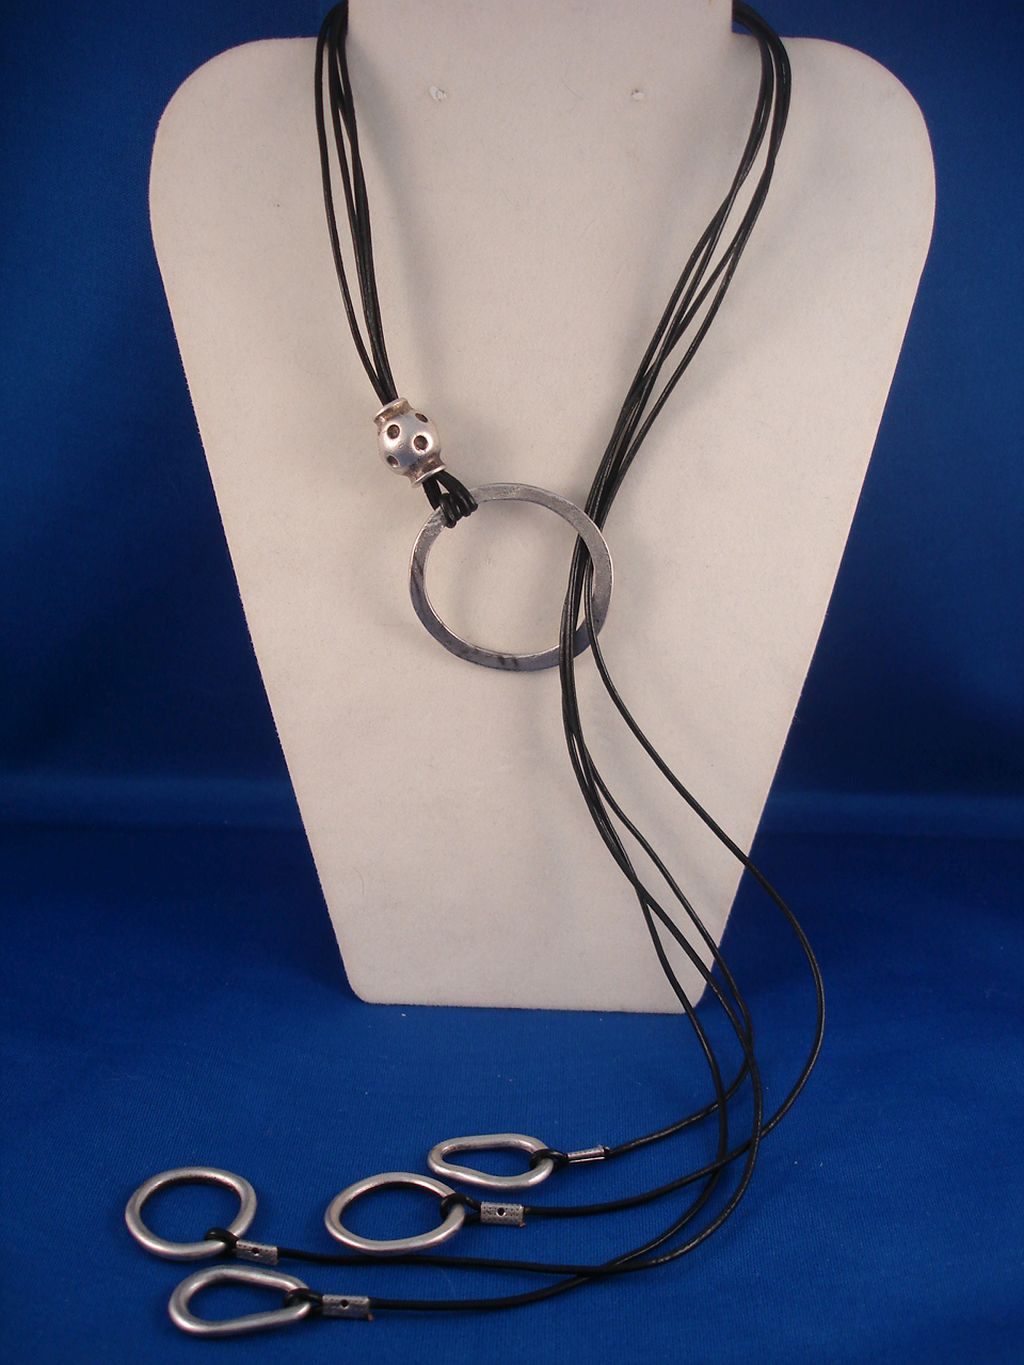 Contemporary Black Genuine Leather Necklace, Adjustable Length, European Fashion Jewelry